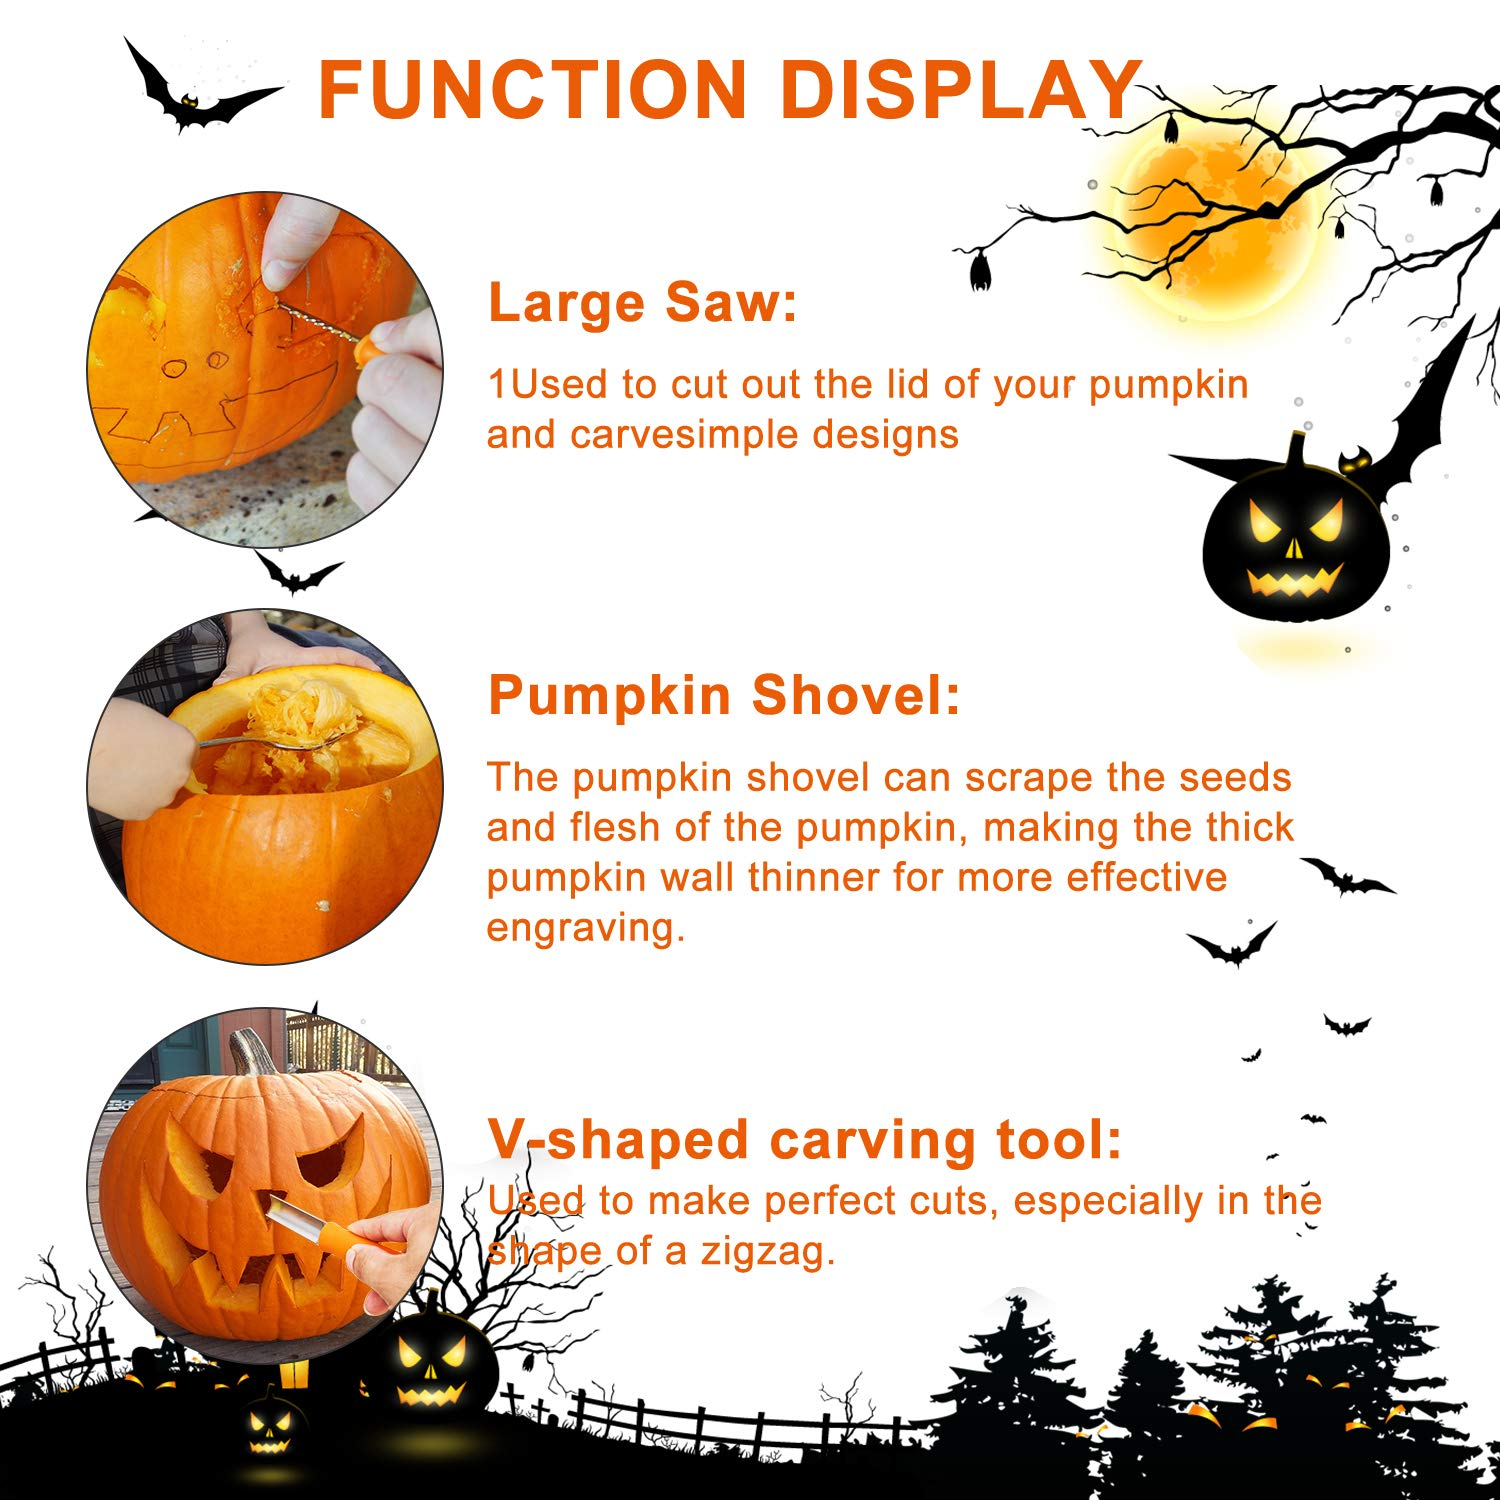 Pumpkin Carving Kit, 4 Pieces Heavy Duty Stainless Steel Pumpkin Carving Tools with 10 Carving Stencils, Ergonomic Design, Perfect for Adult and Children Halloween Decoration by Fantech (Image #4)